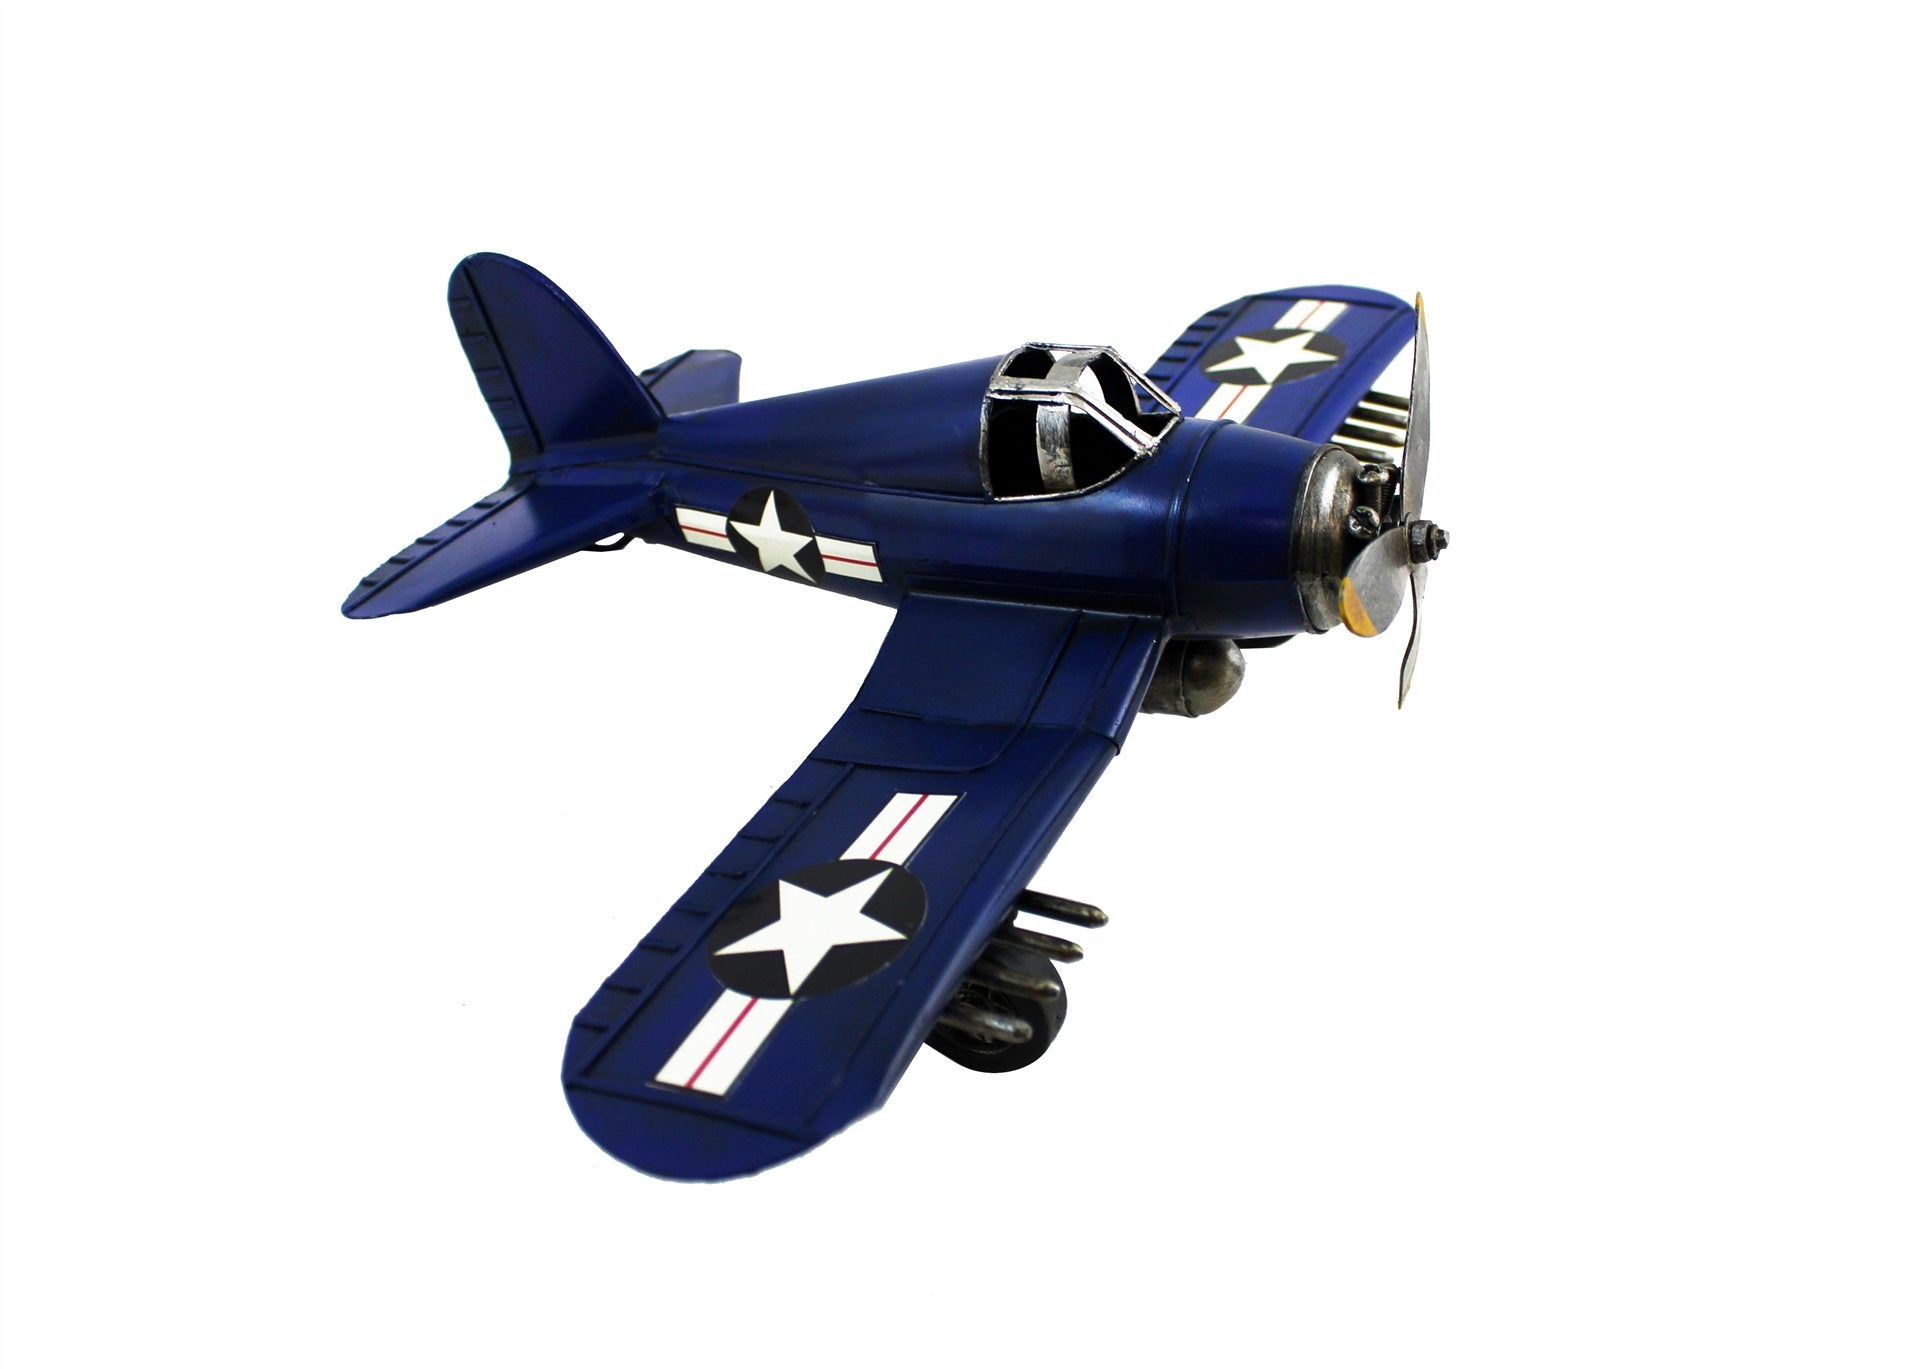 MINIATURE AIRPLANE